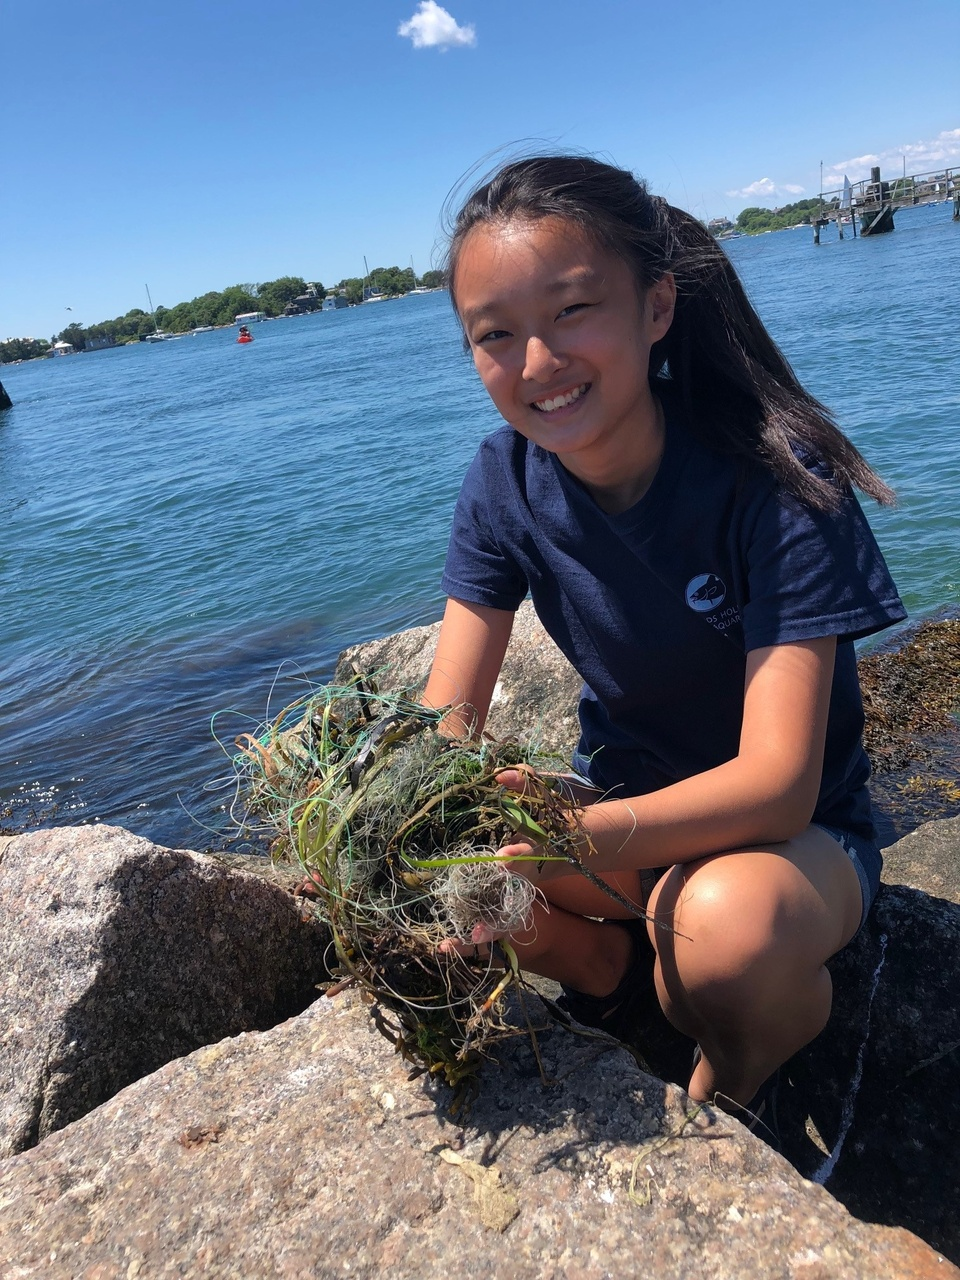 Female intern holding grass and fishing line on the rocks near the water's edge